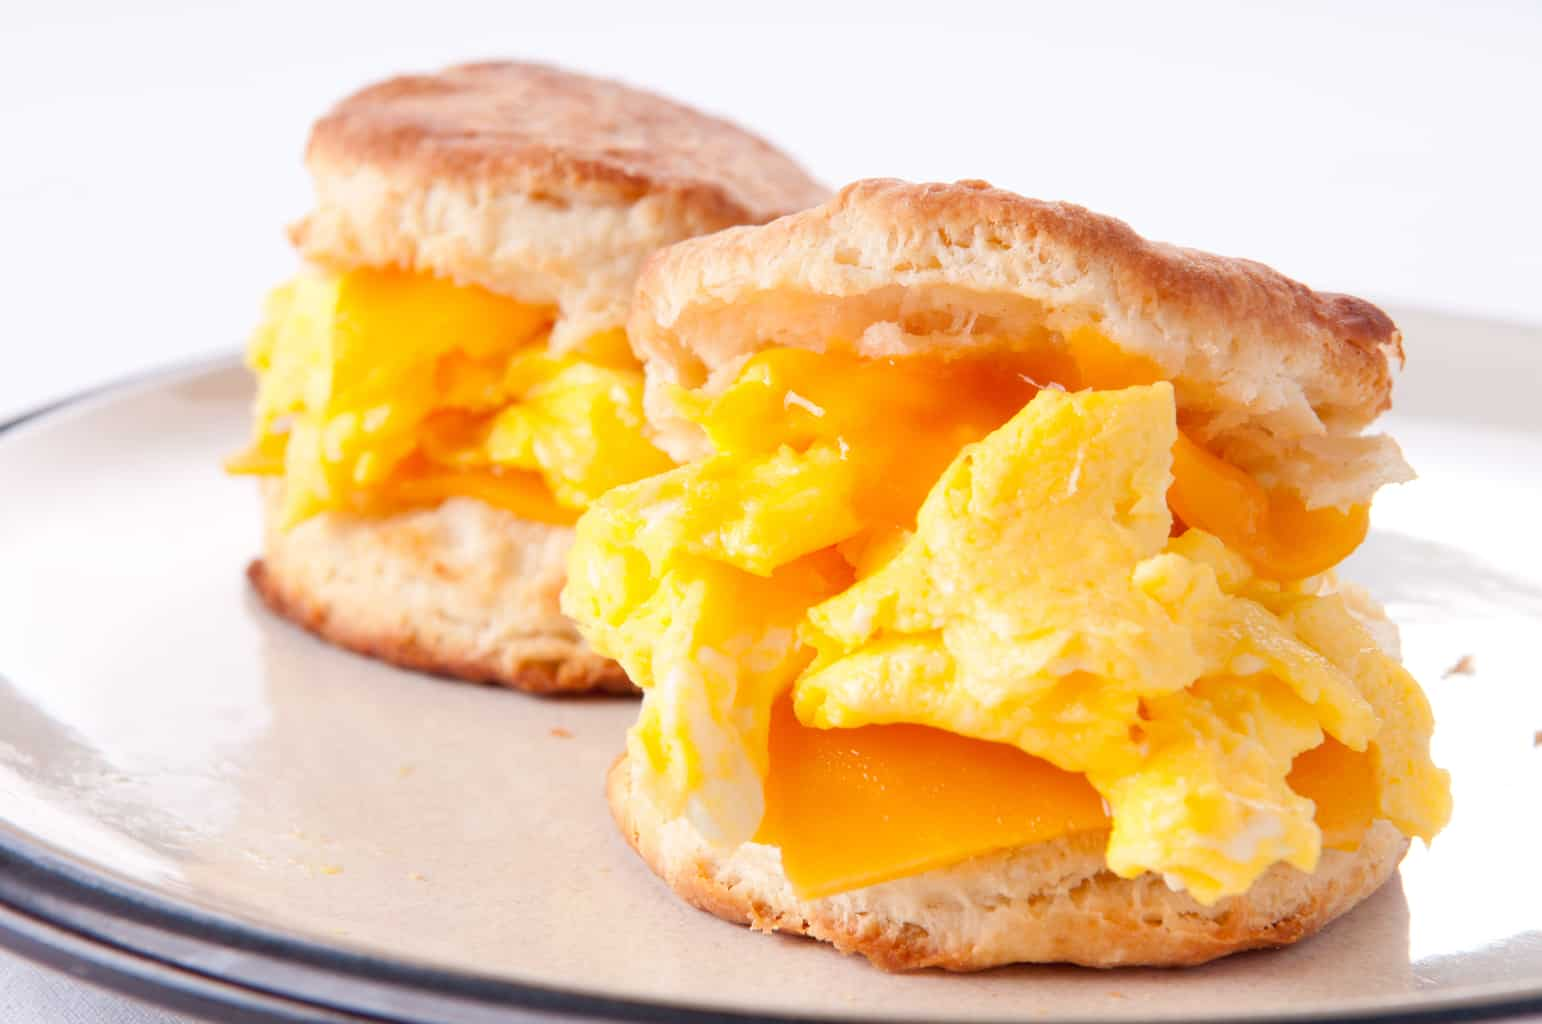 What Is A Healthy Fast Food Breakfast